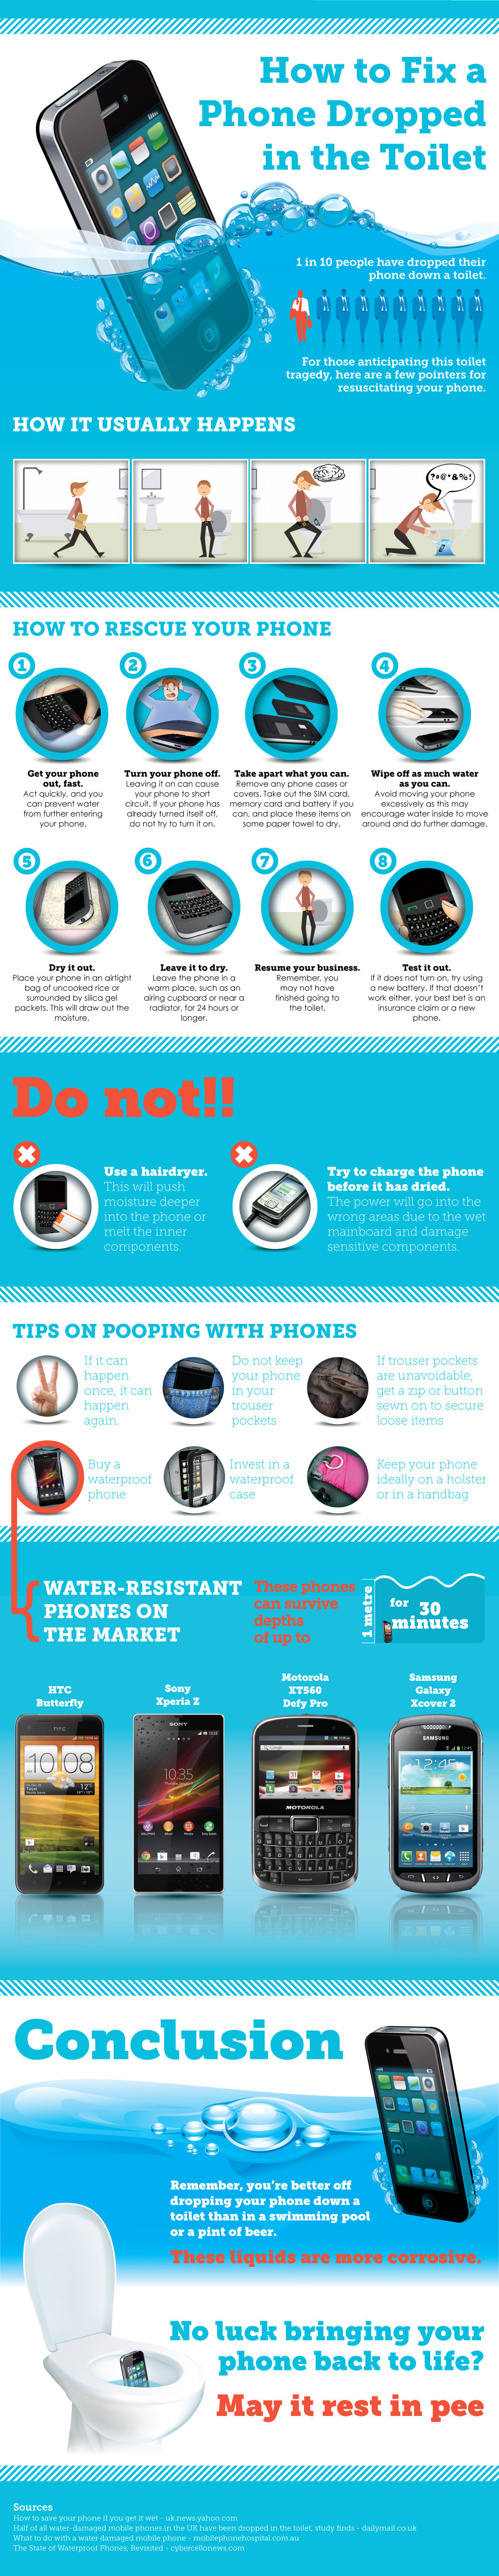 how-to-fix-your-phone